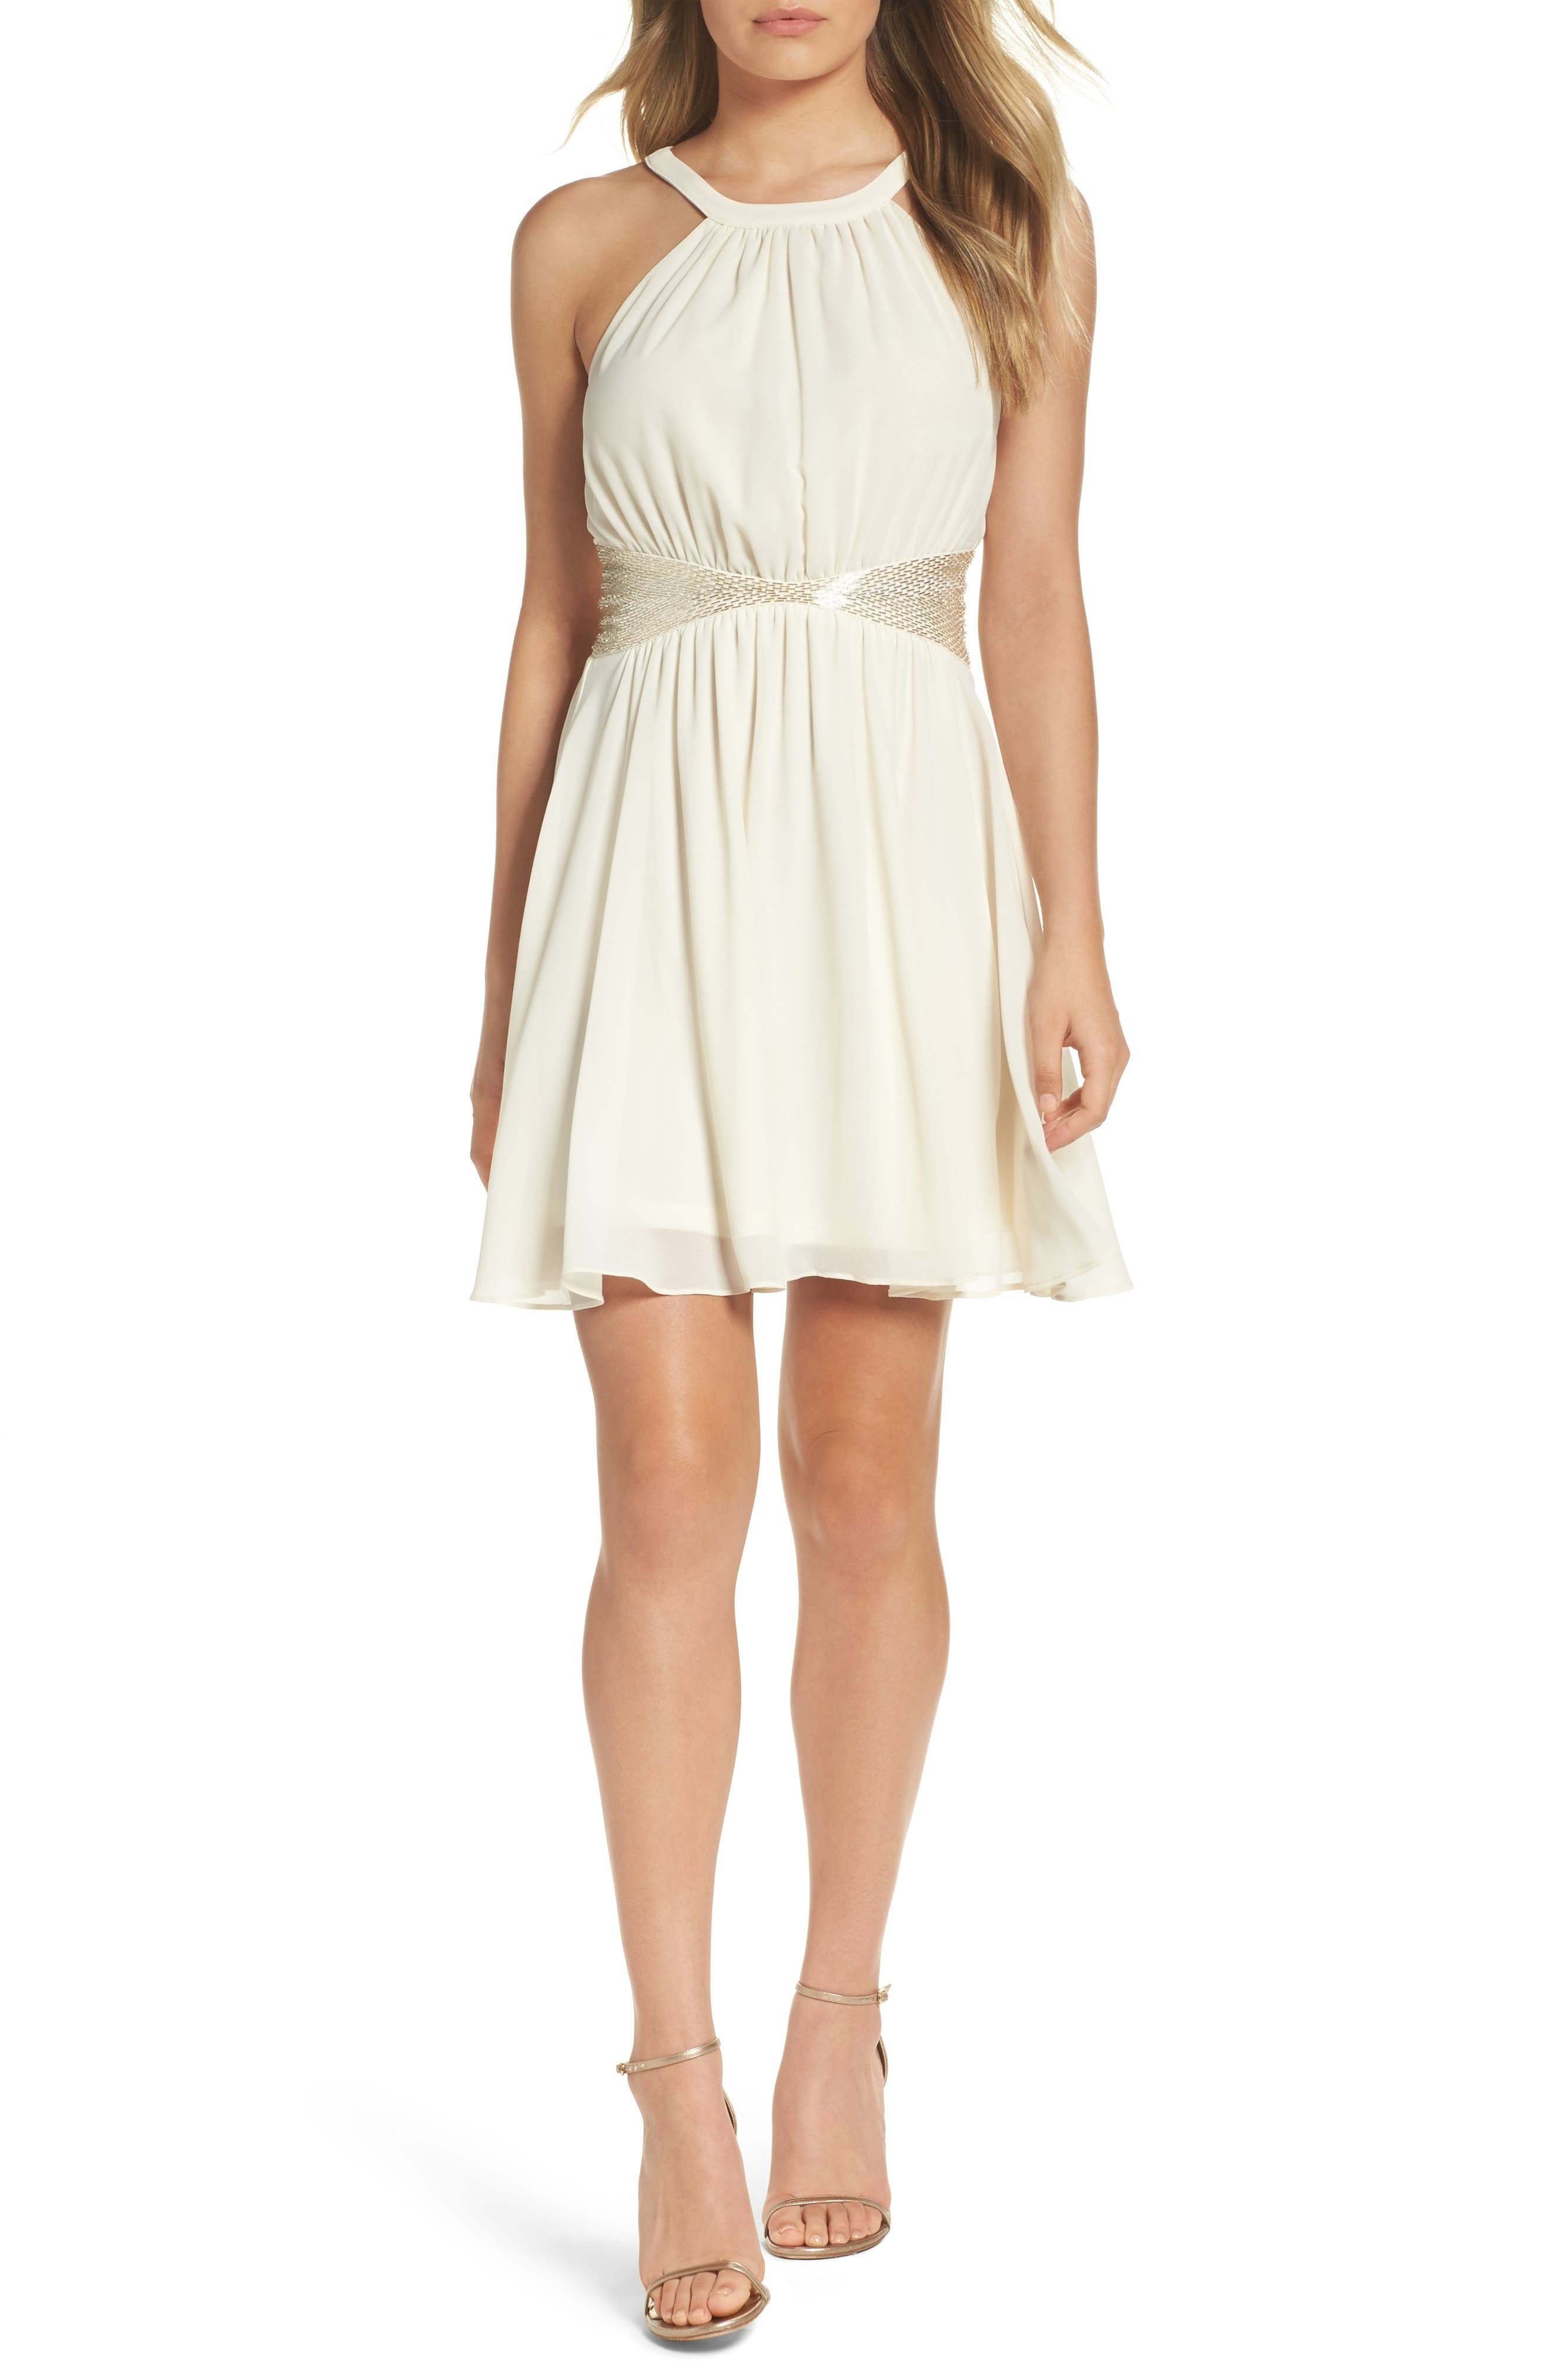 One More Night Beaded Skater Dress,                         Main,                         color, 900